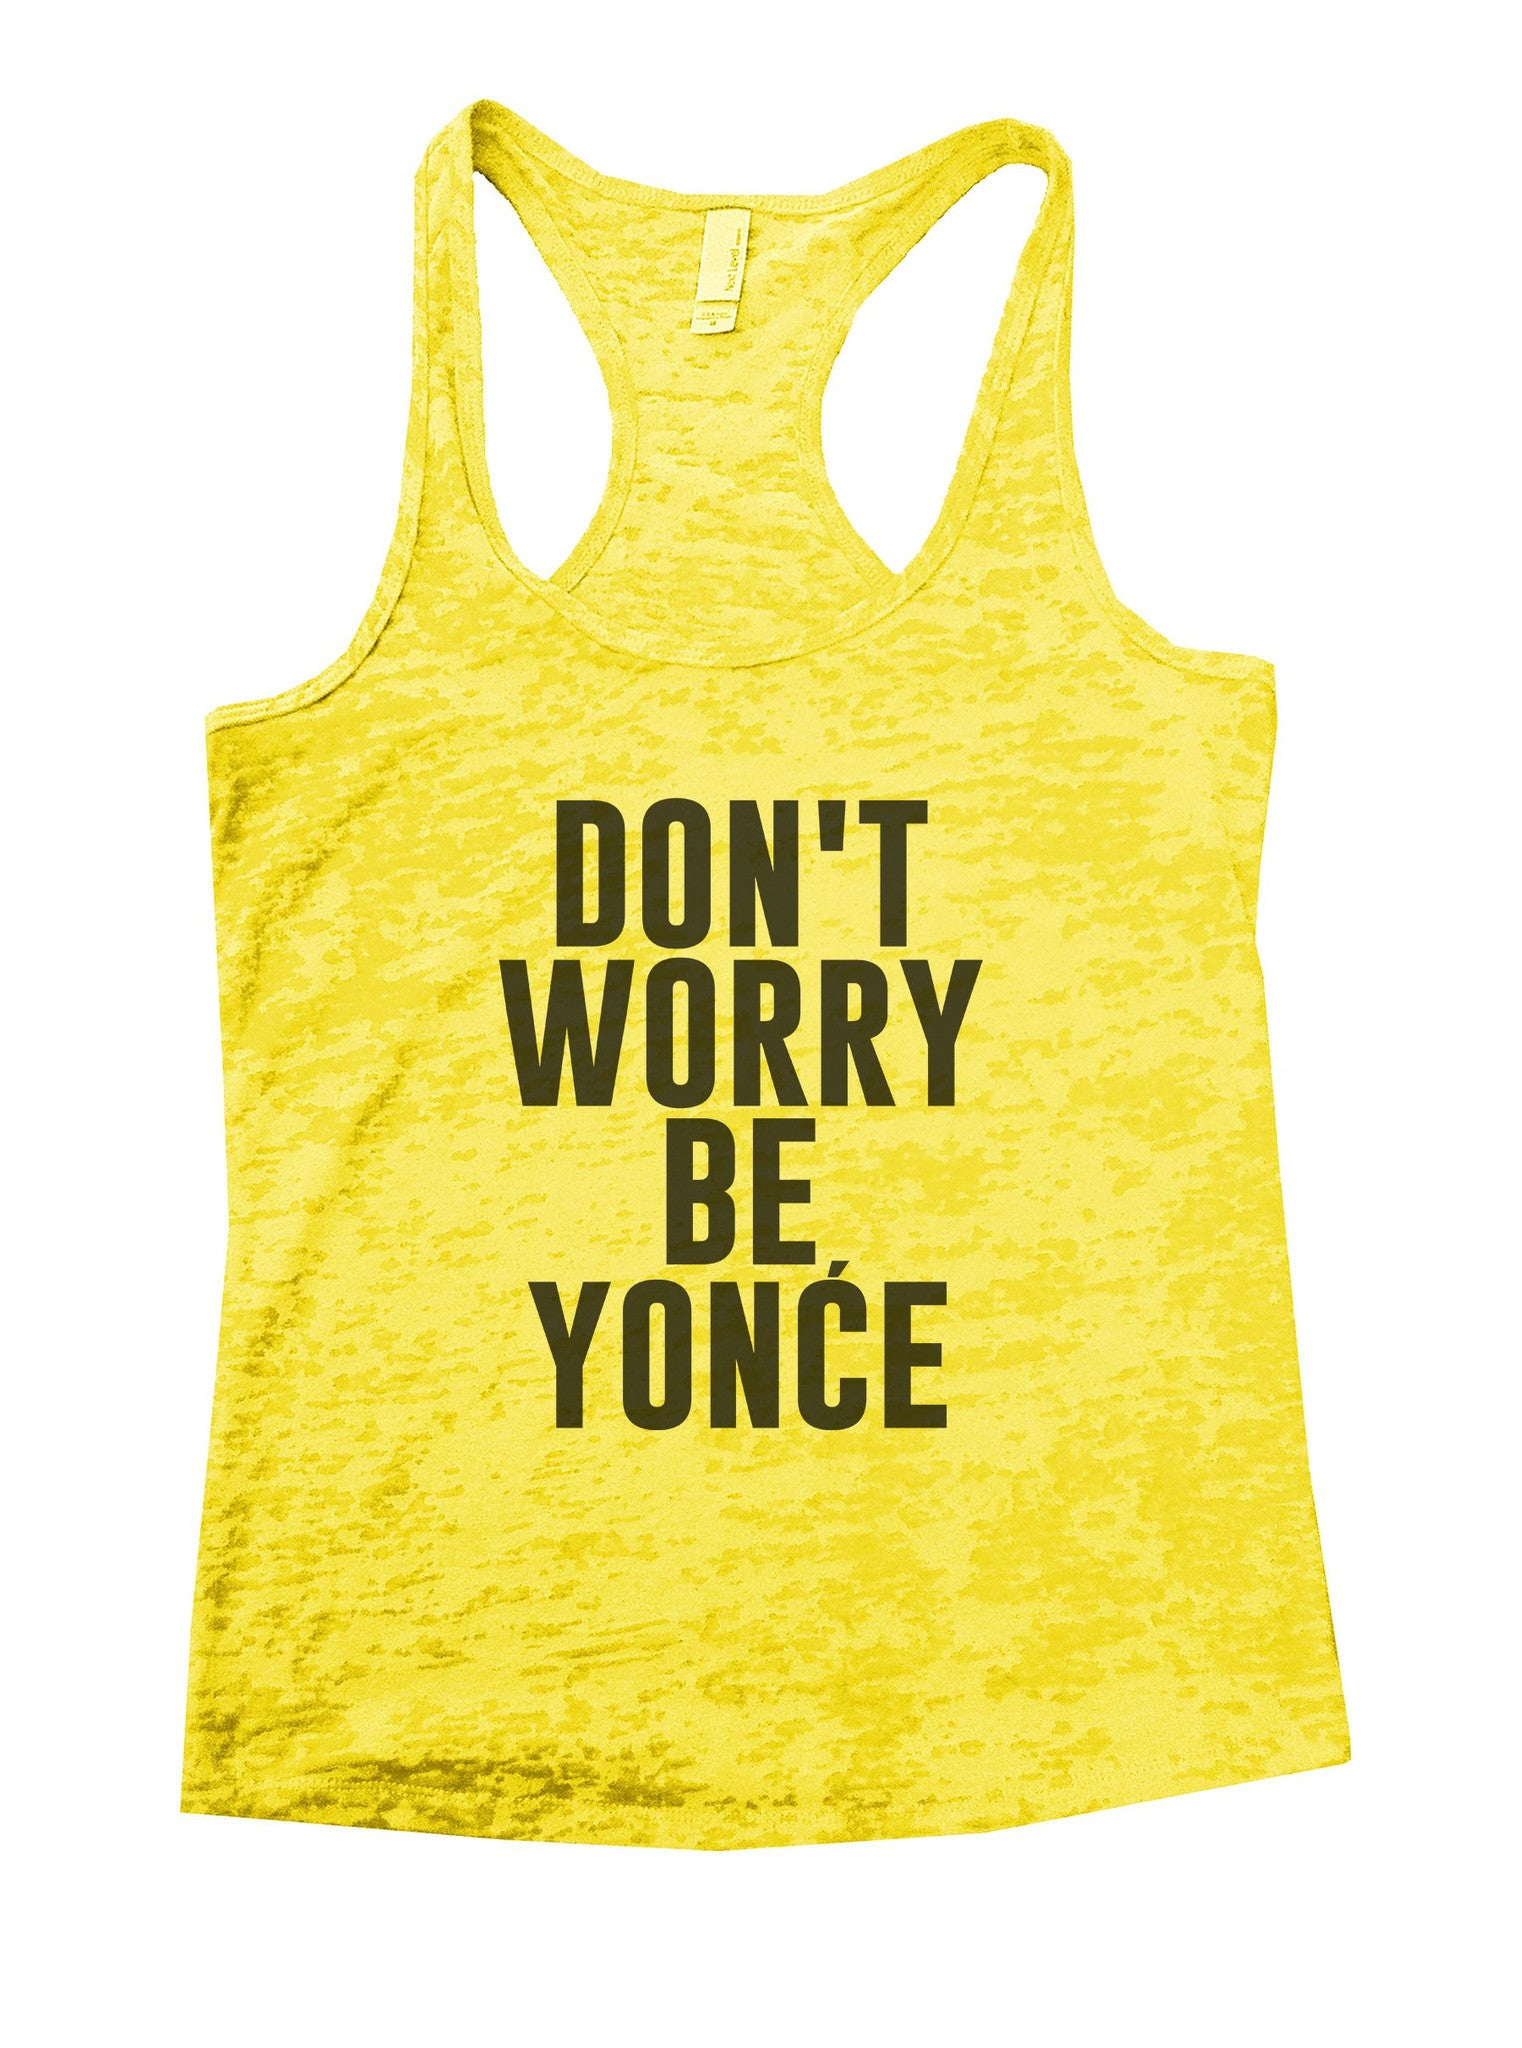 Don't Worry Be Yonce Burnout Tank Top By BurnoutTankTops.com - 934 - Funny Shirts Tank Tops Burnouts and Triblends  - 6